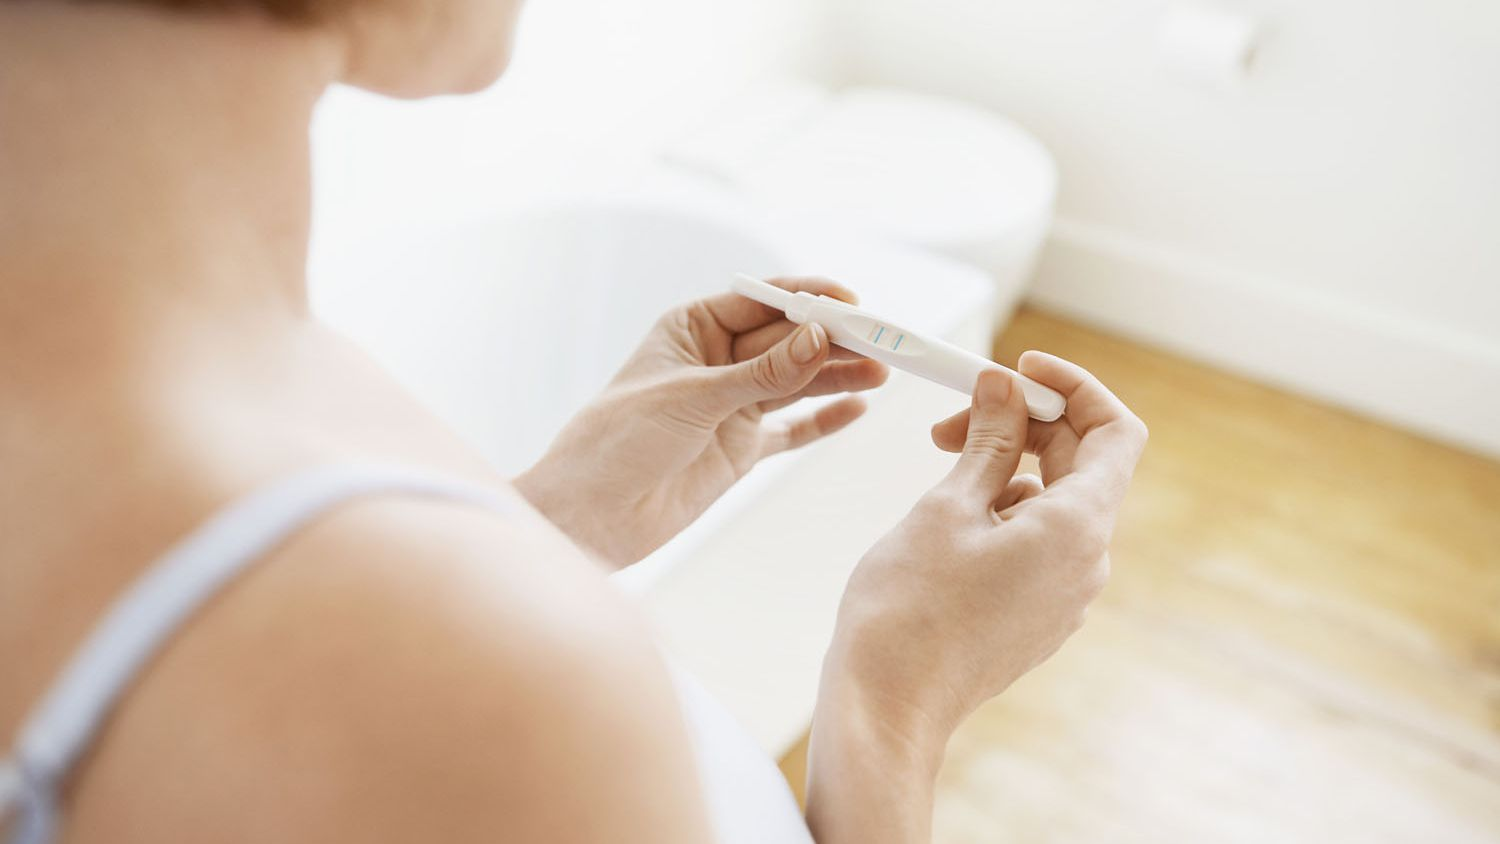 The 8 Best Pregnancy Tests of 2019